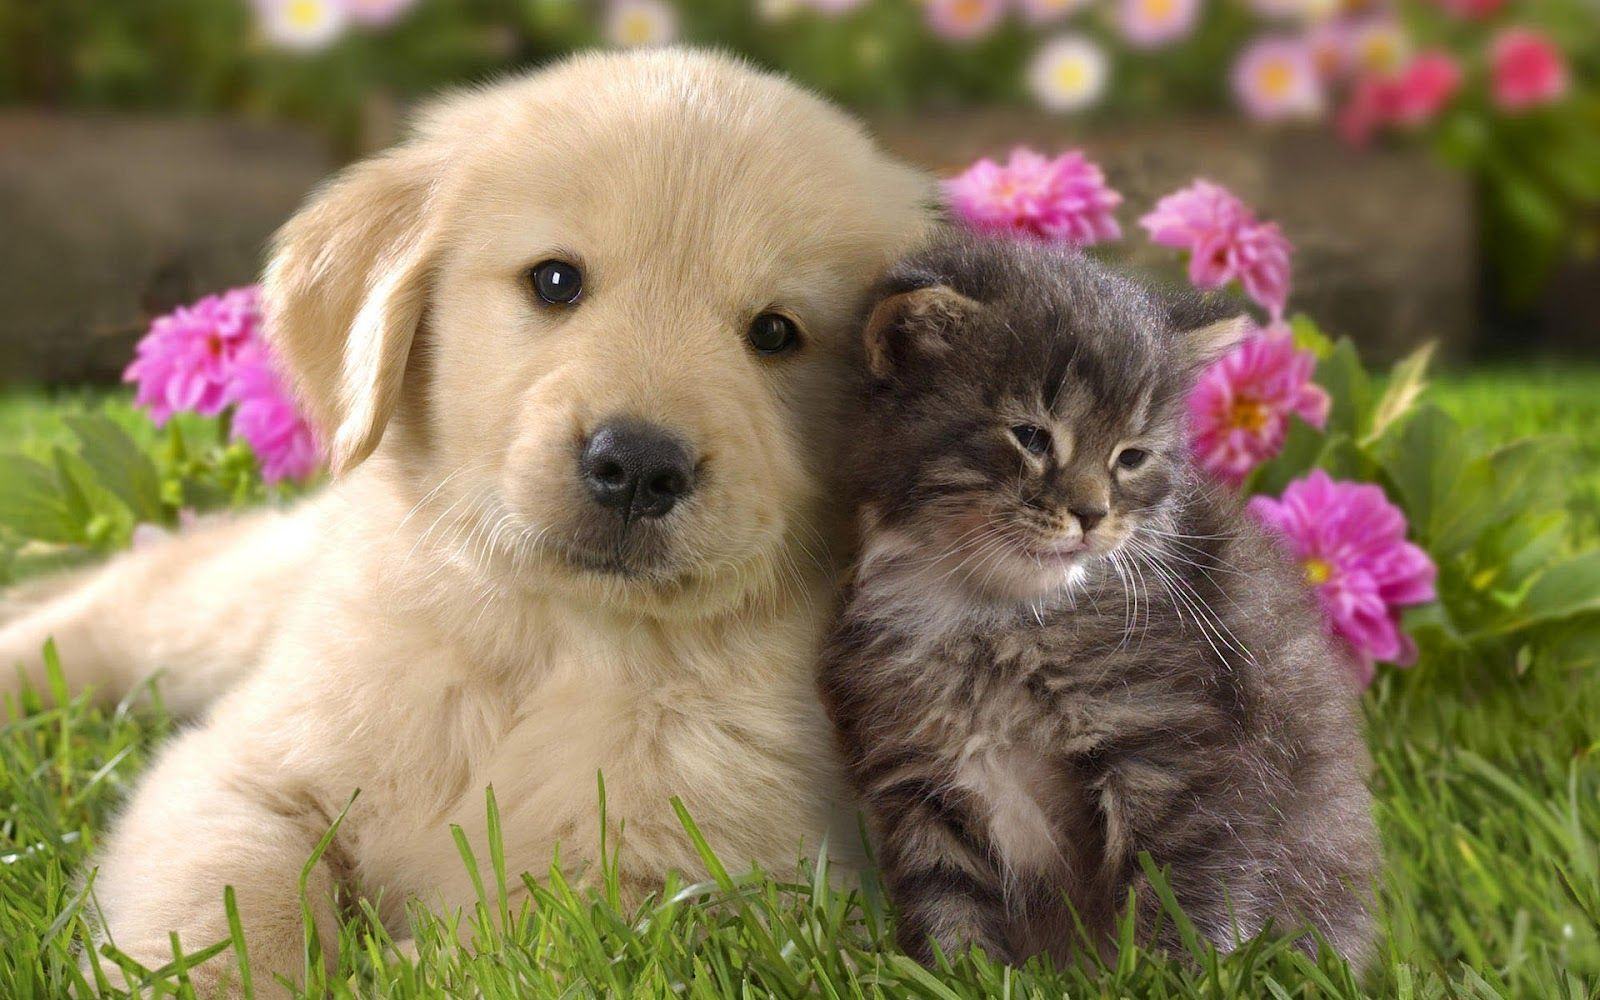 Wallpaper Of Cats And Dogs